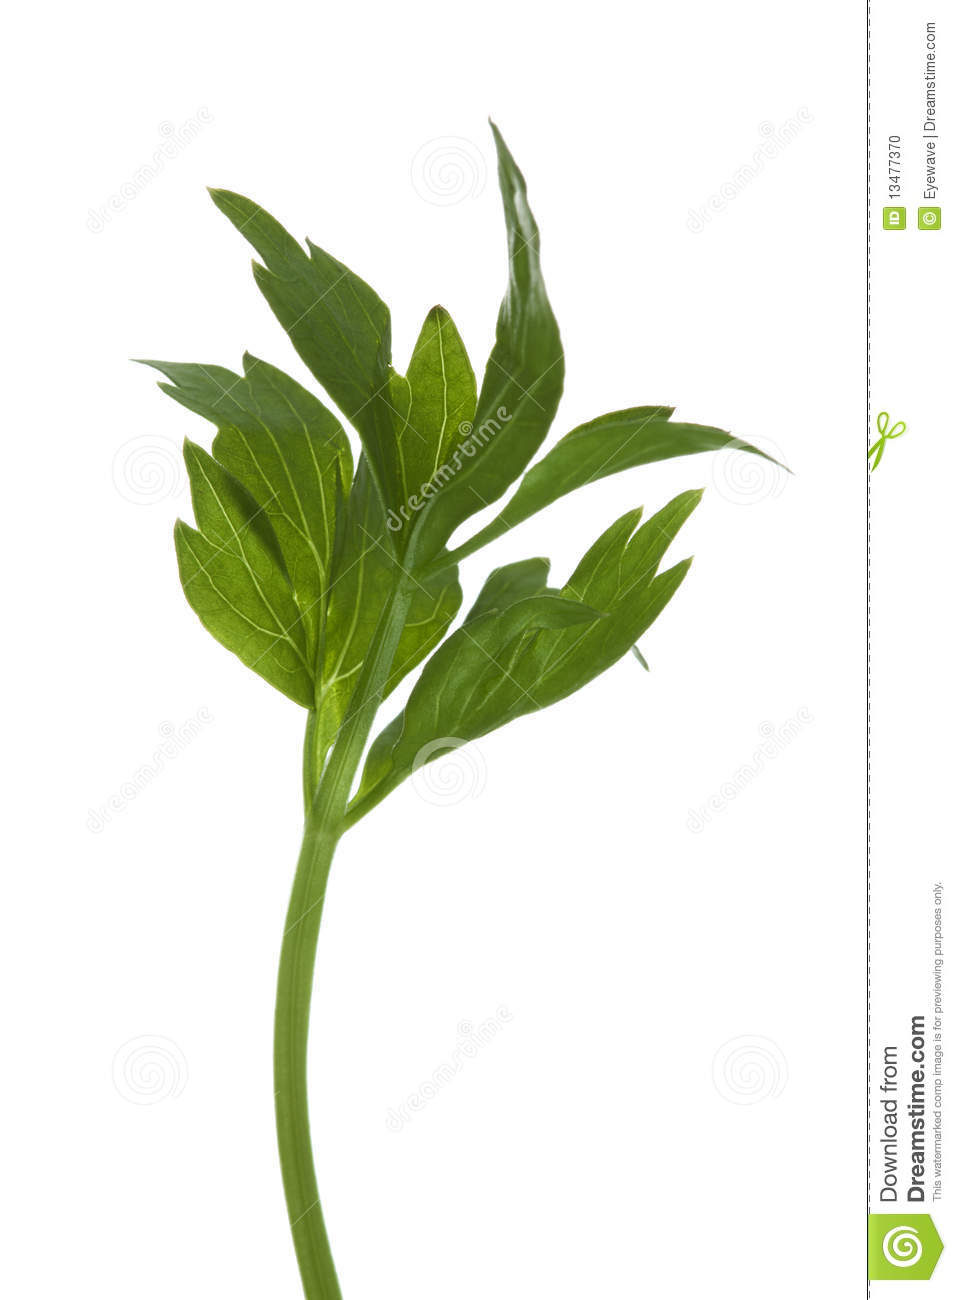 Fresh italian parsley herb twig stock photo image 13477370 - Tips planting herbs lovage parsley dill ...